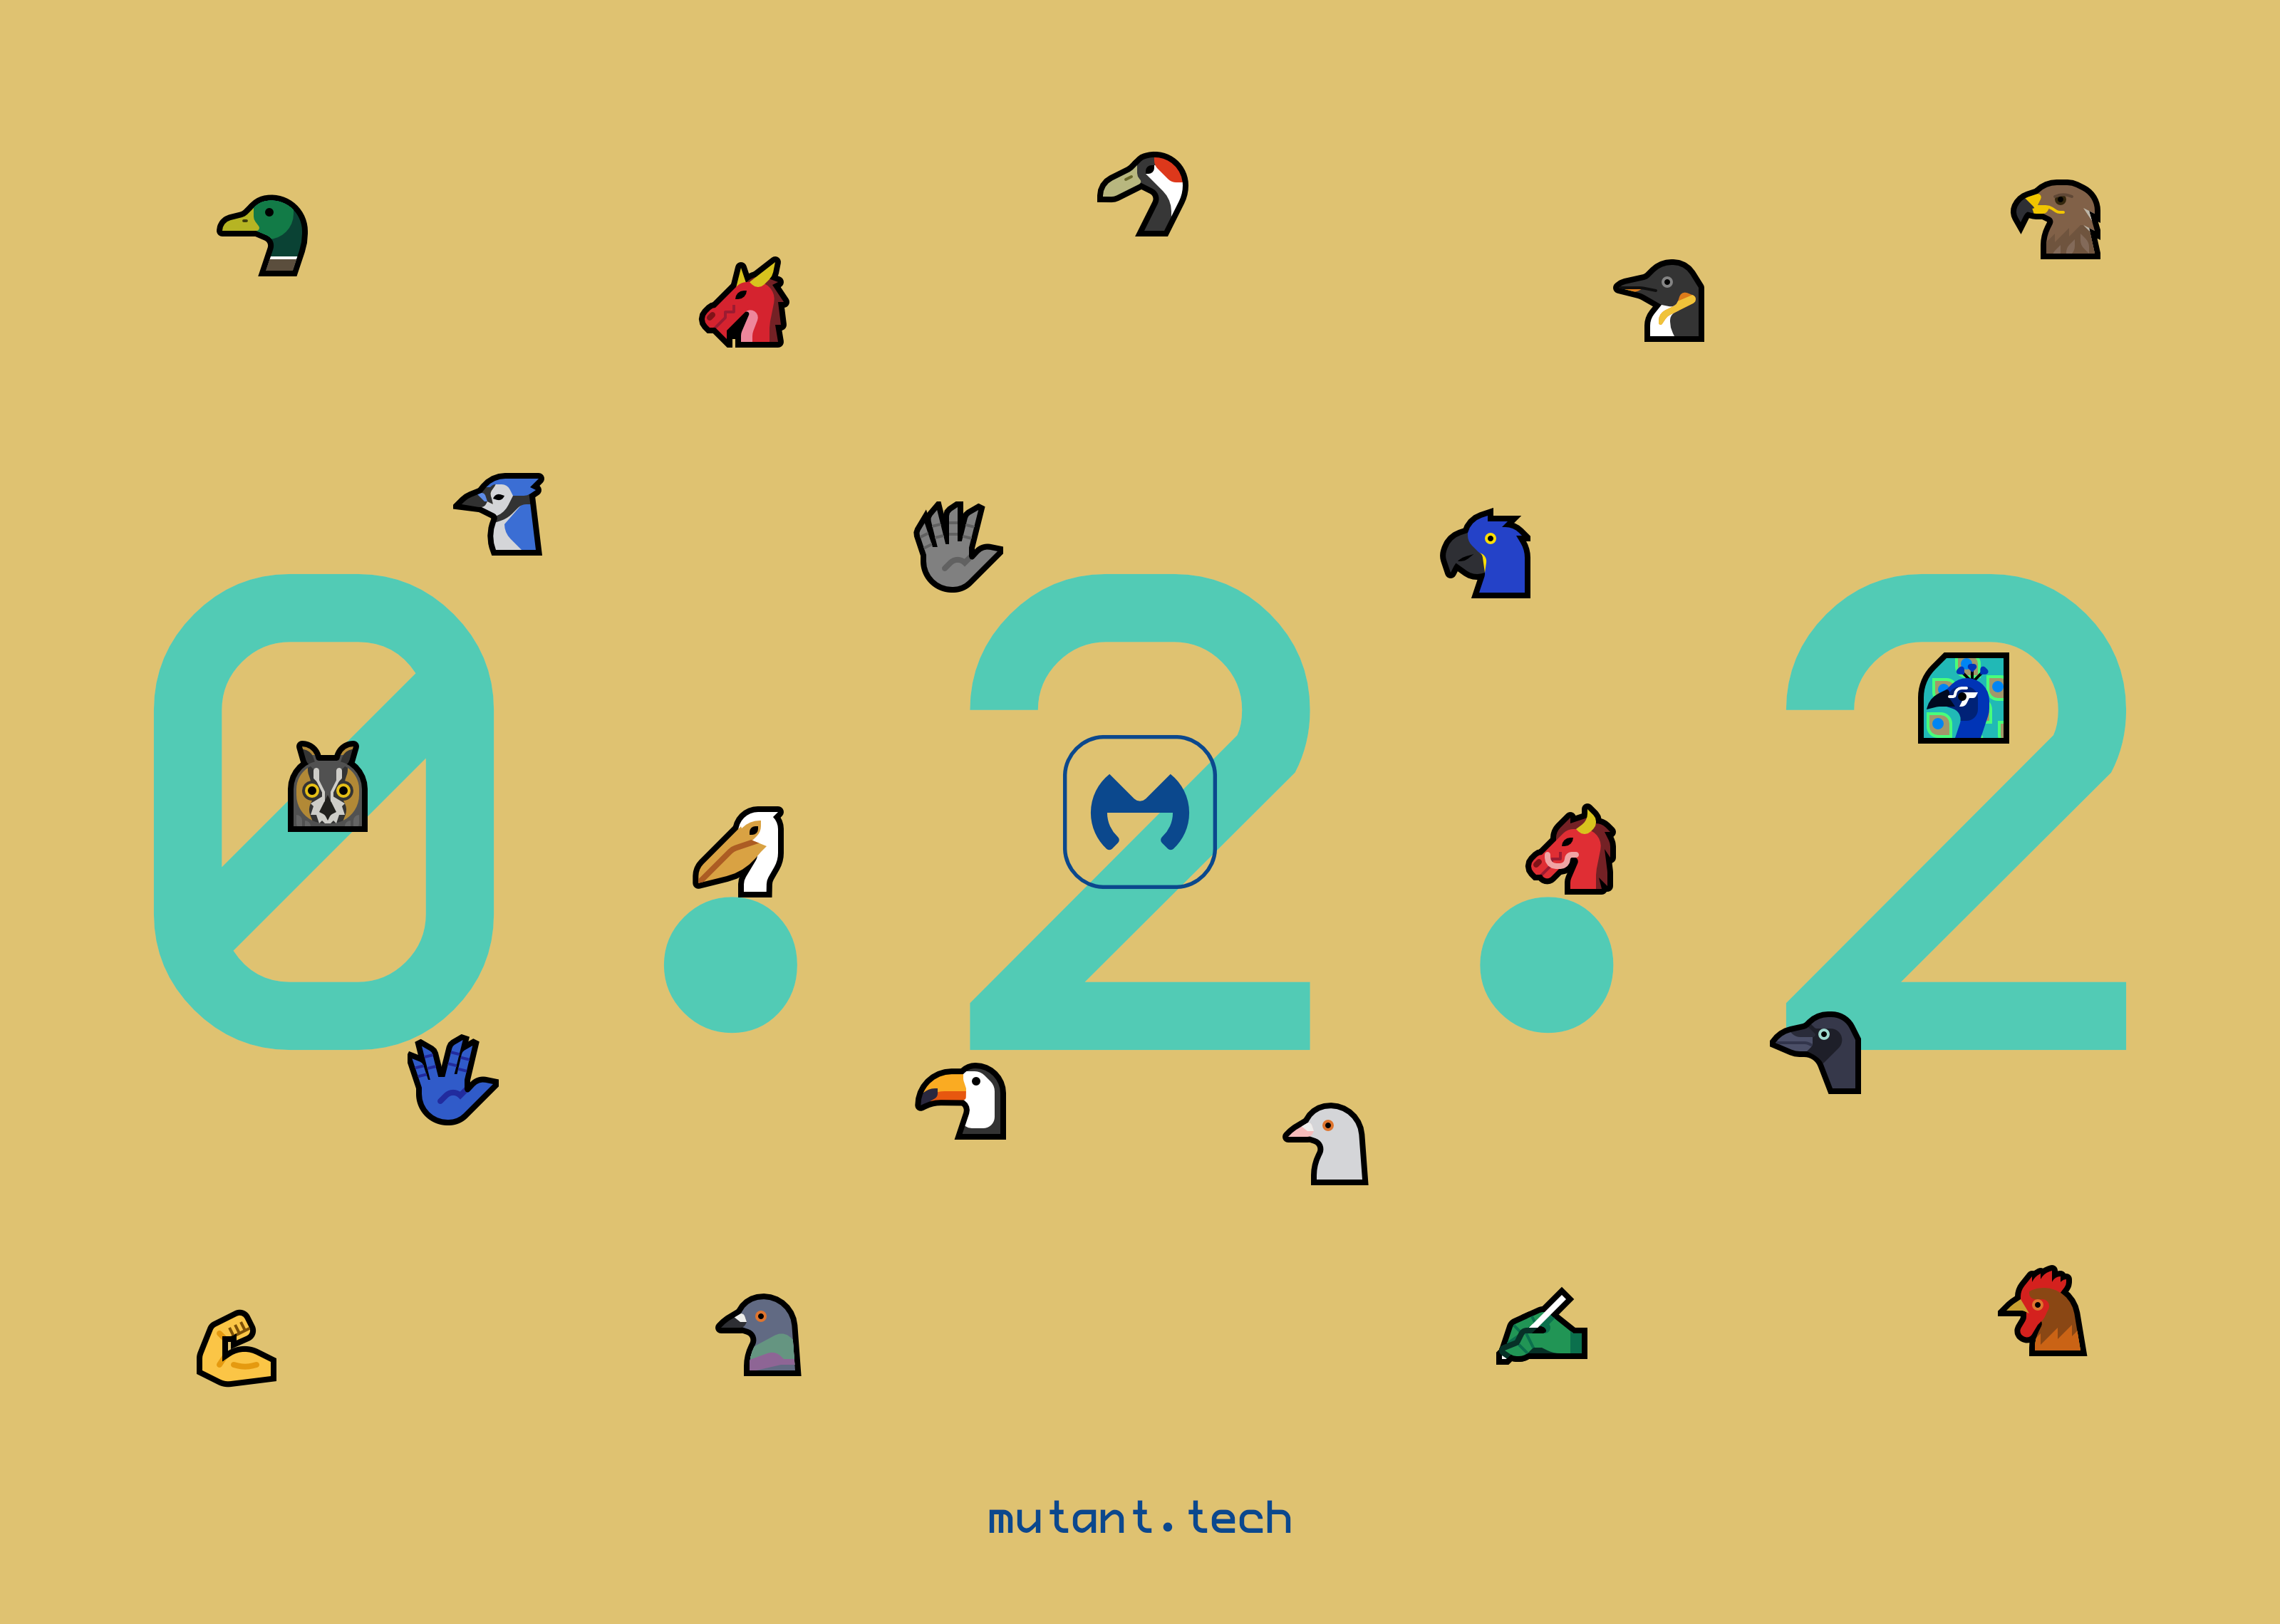 Promo image of Mutant Standard 0.2.2 - all of the new emoji are arranged in a scattered manner around the logo in front of a tan background.